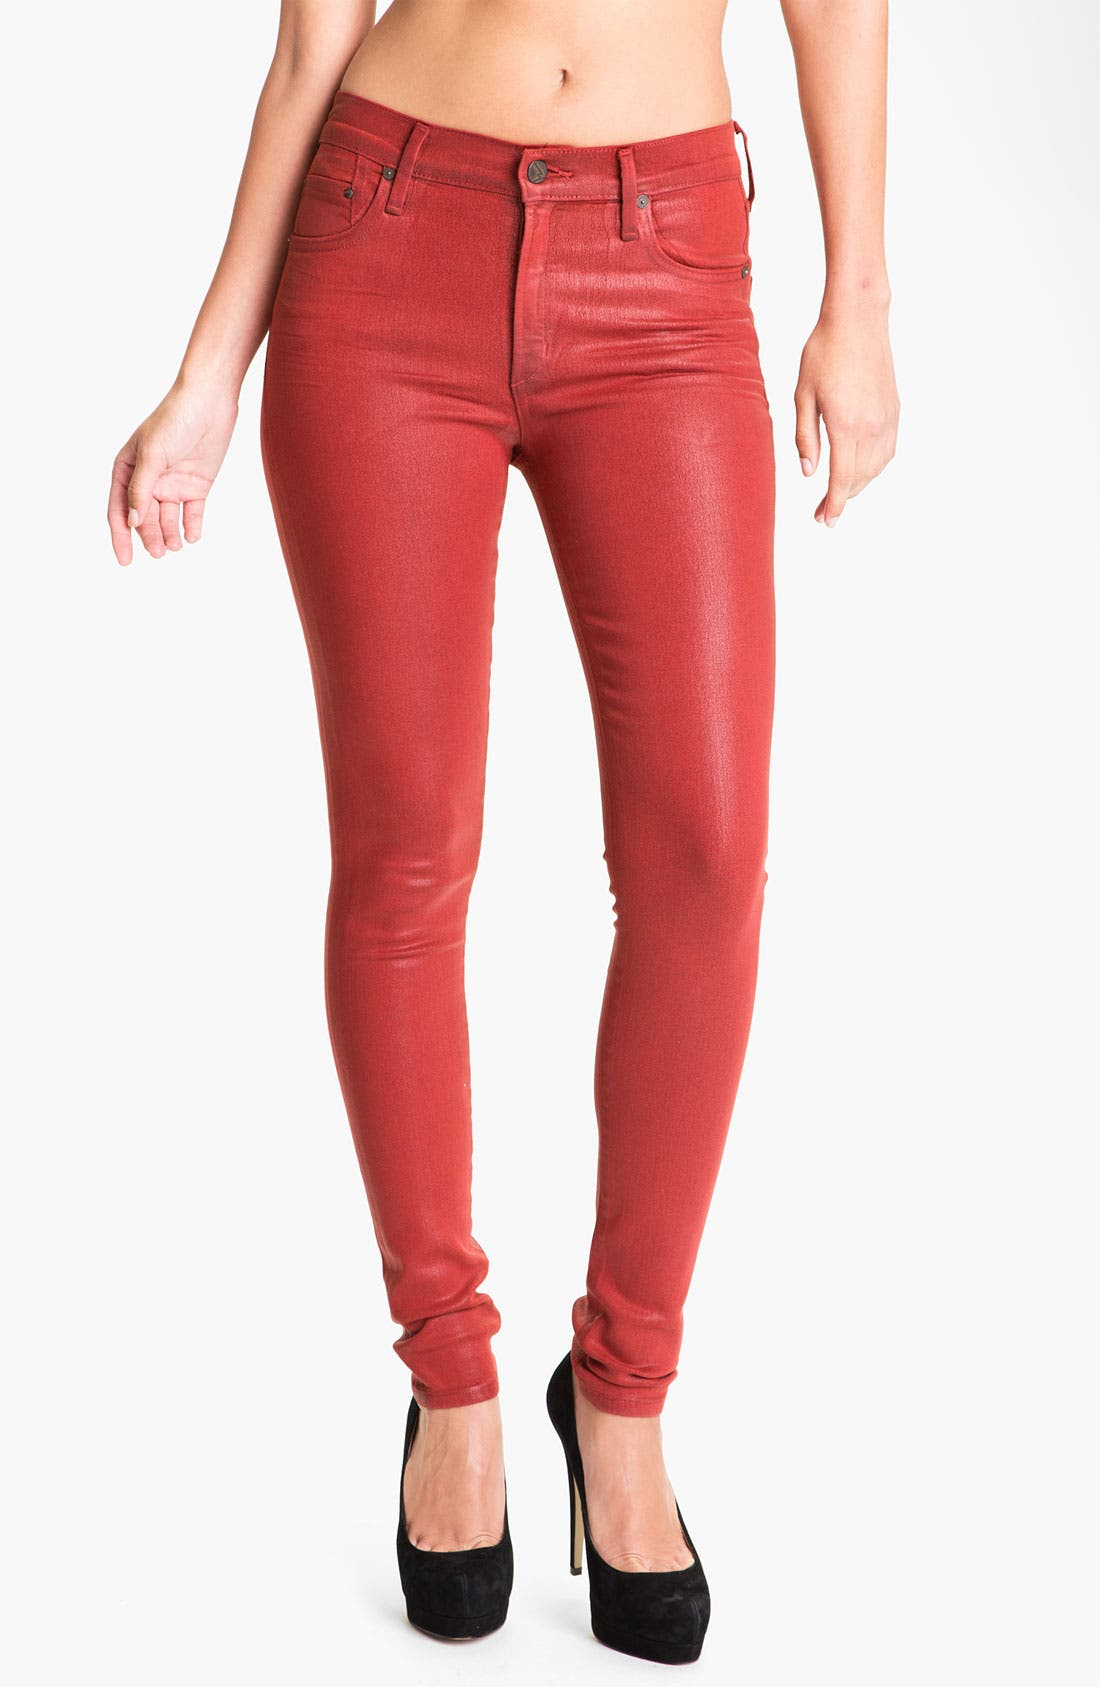 Alternate Image 1 Selected - Citizens of Humanity 'Rocket' Skinny Leatherette Jeans (Vamp Red)